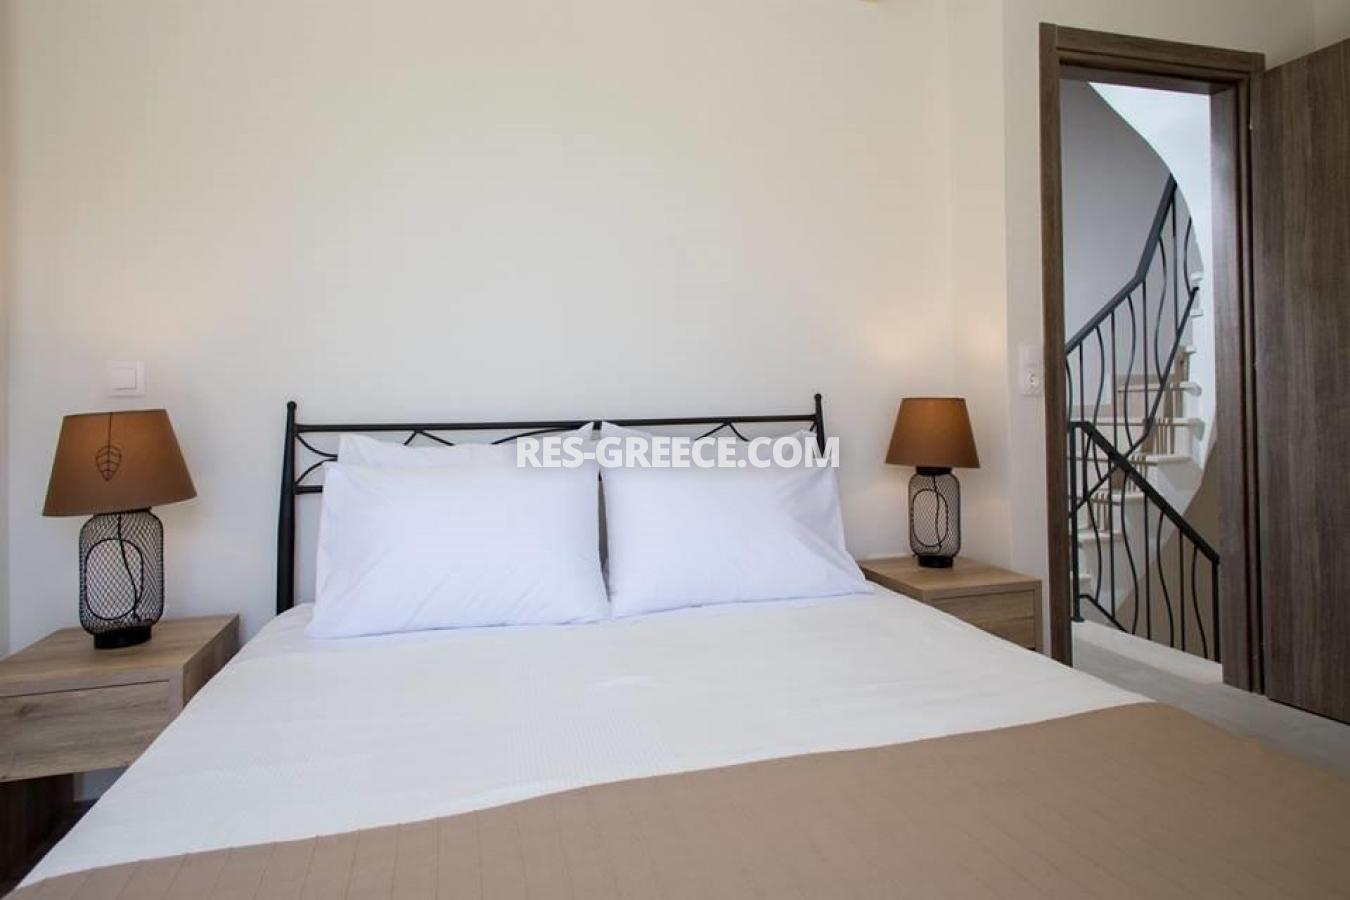 Mesimeri 1, Halkidiki-Kassandra, Greece - modern gated complex by the sea for vacation or rent - Photo 6